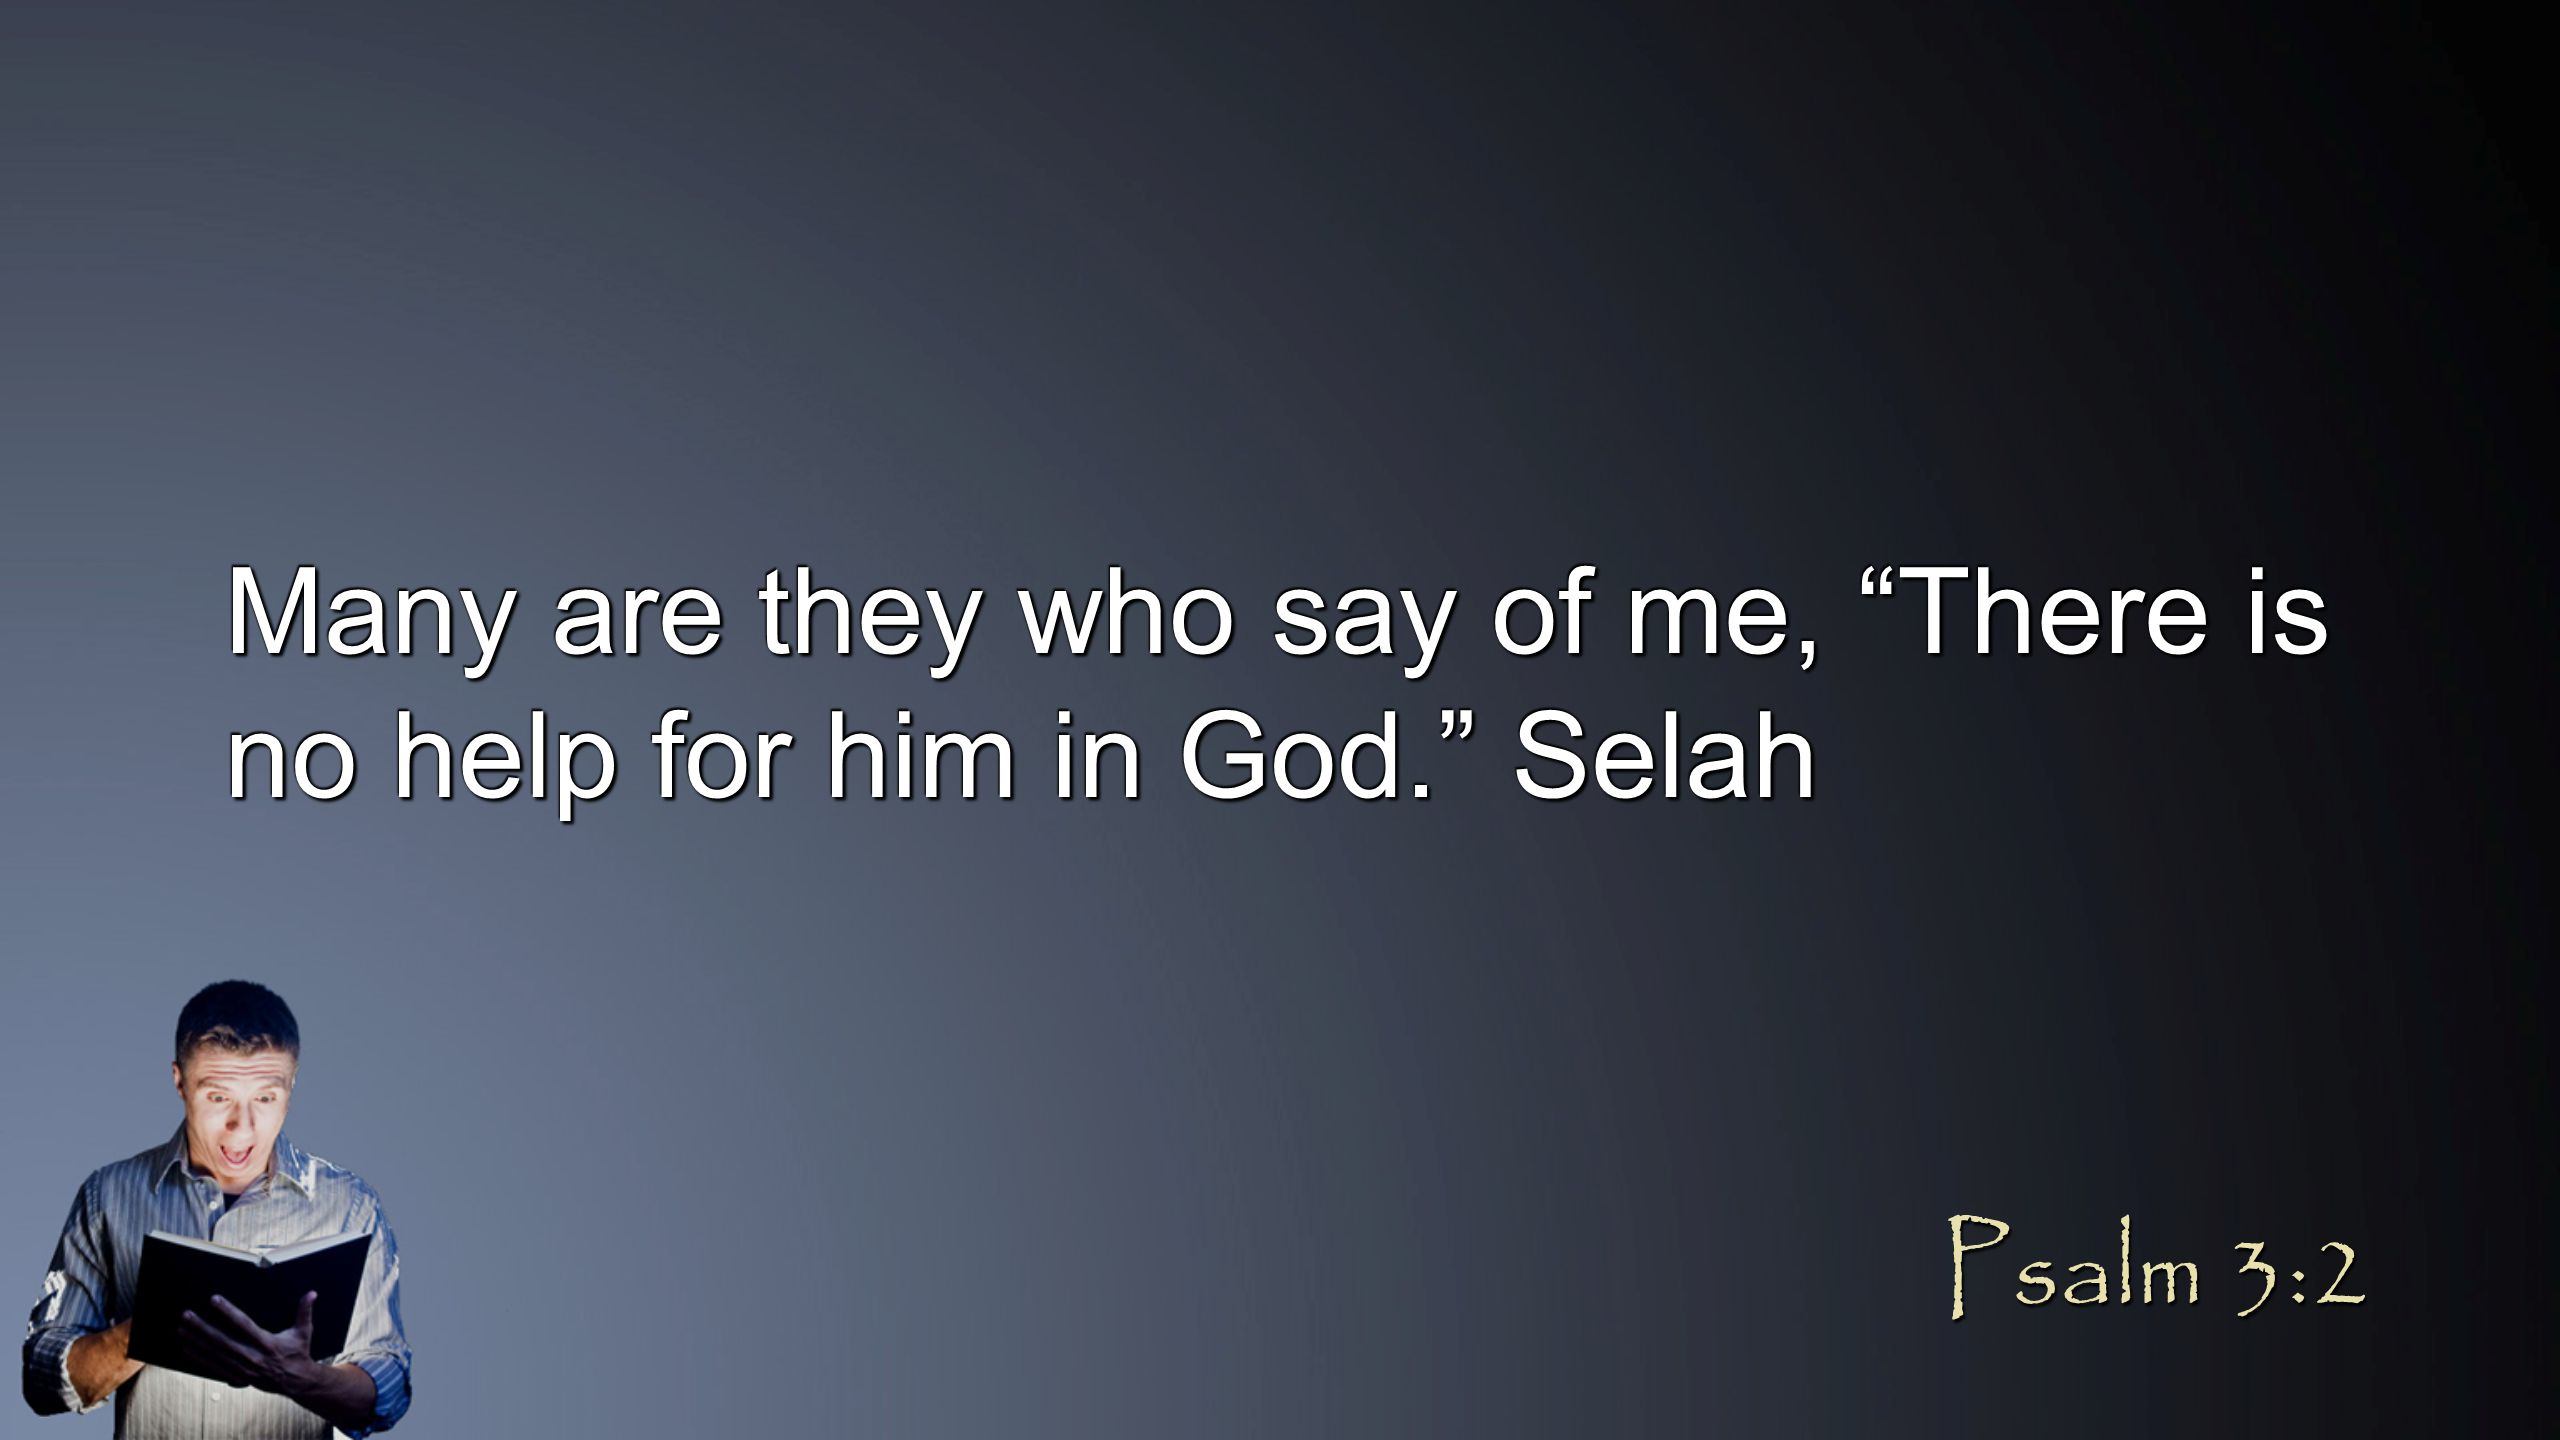 Many are they who say of me, There is no help for him in God. Selah Psalm 3:2